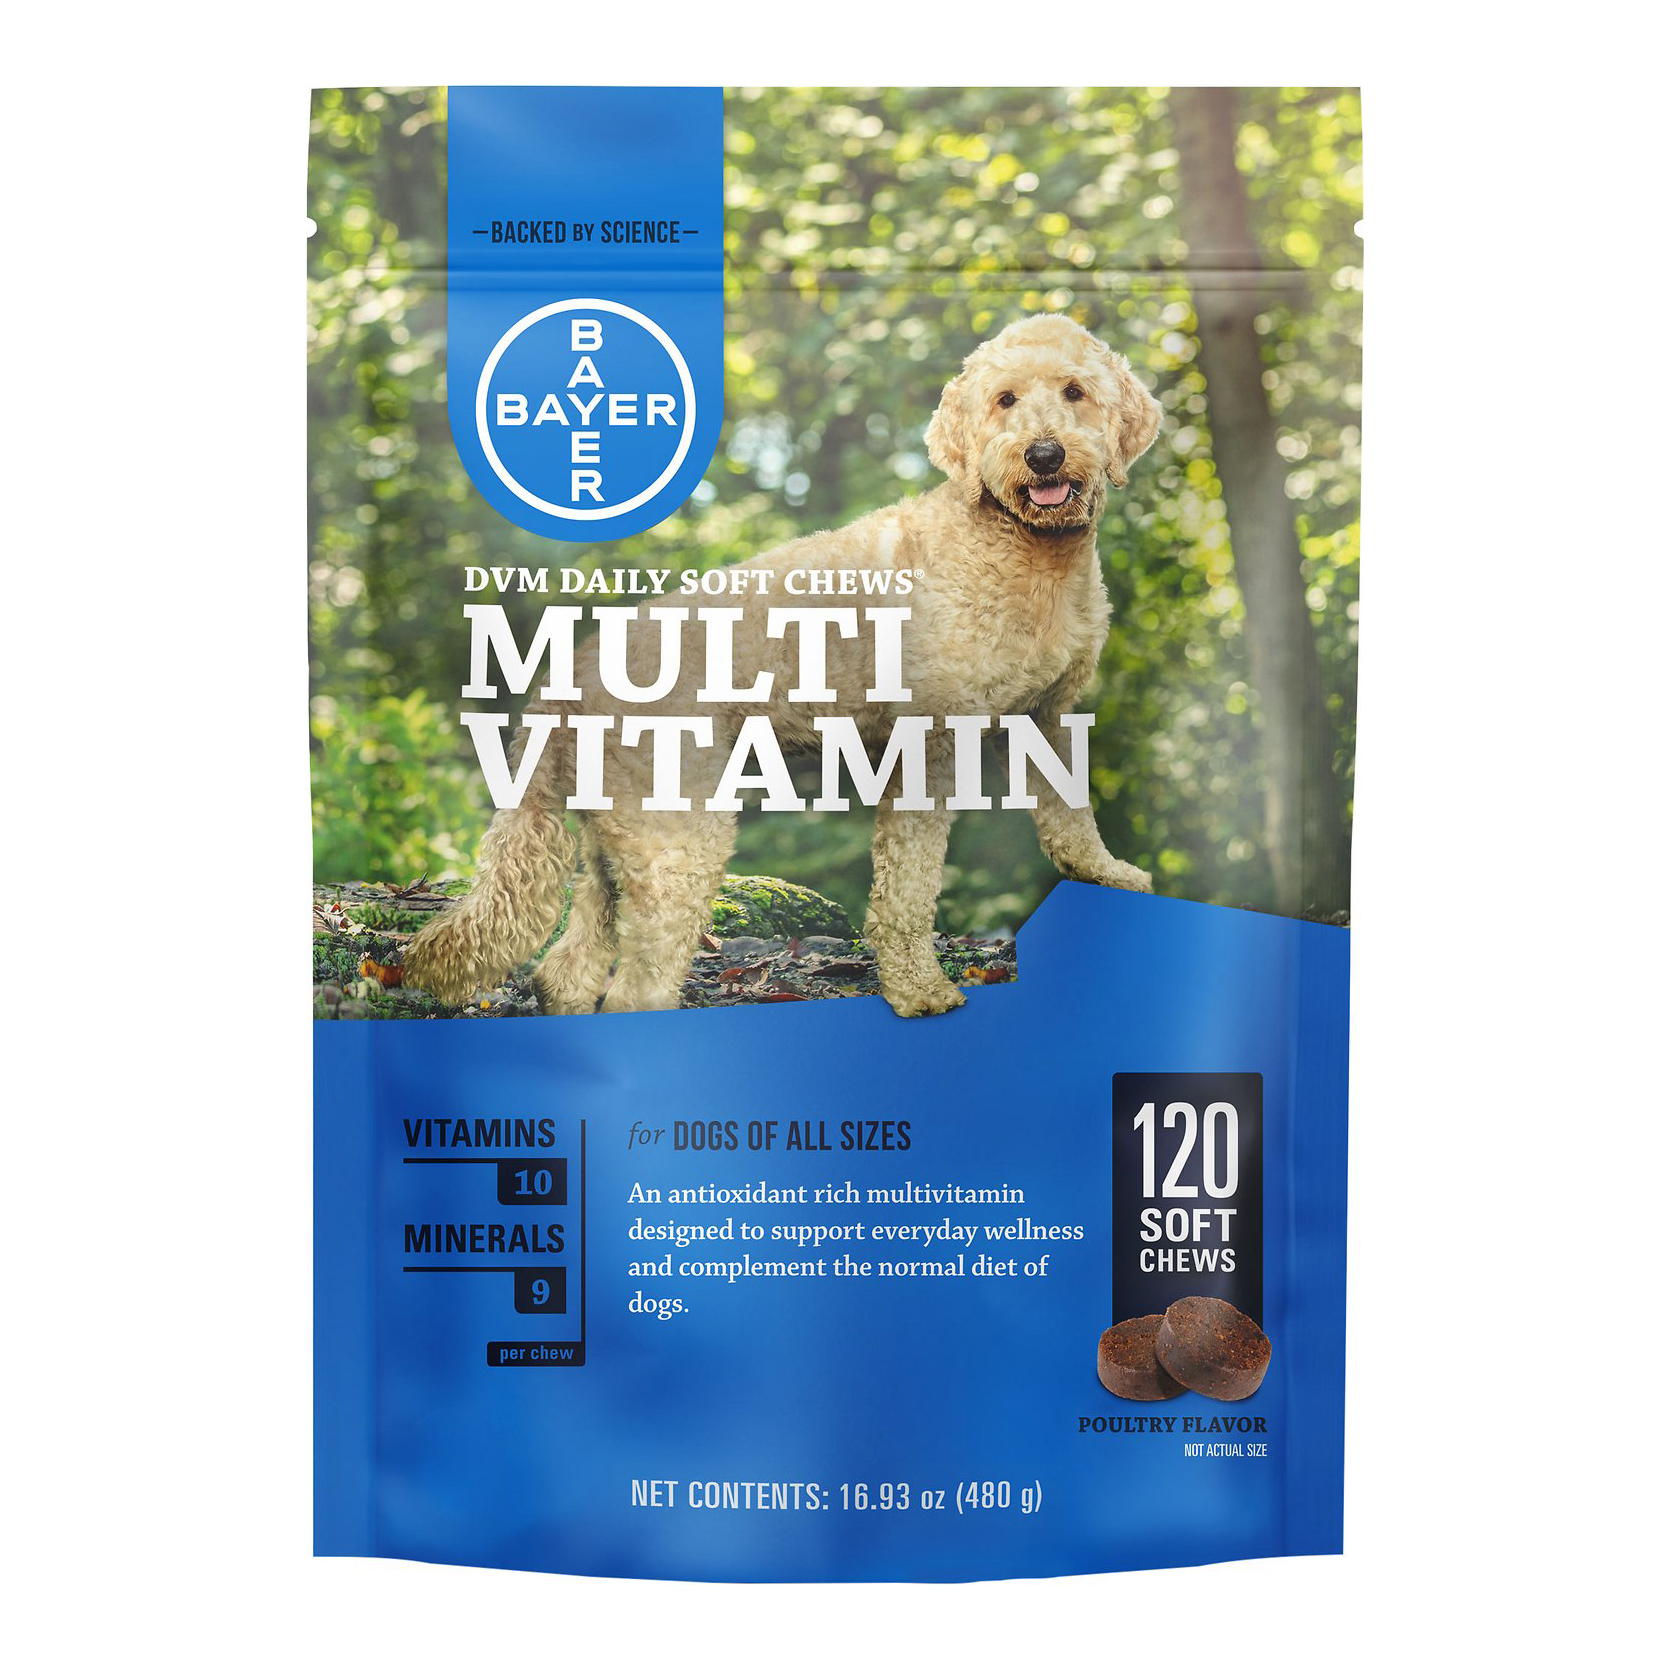 dvm-daily-soft-chews-multi-vitamin-for-dogs